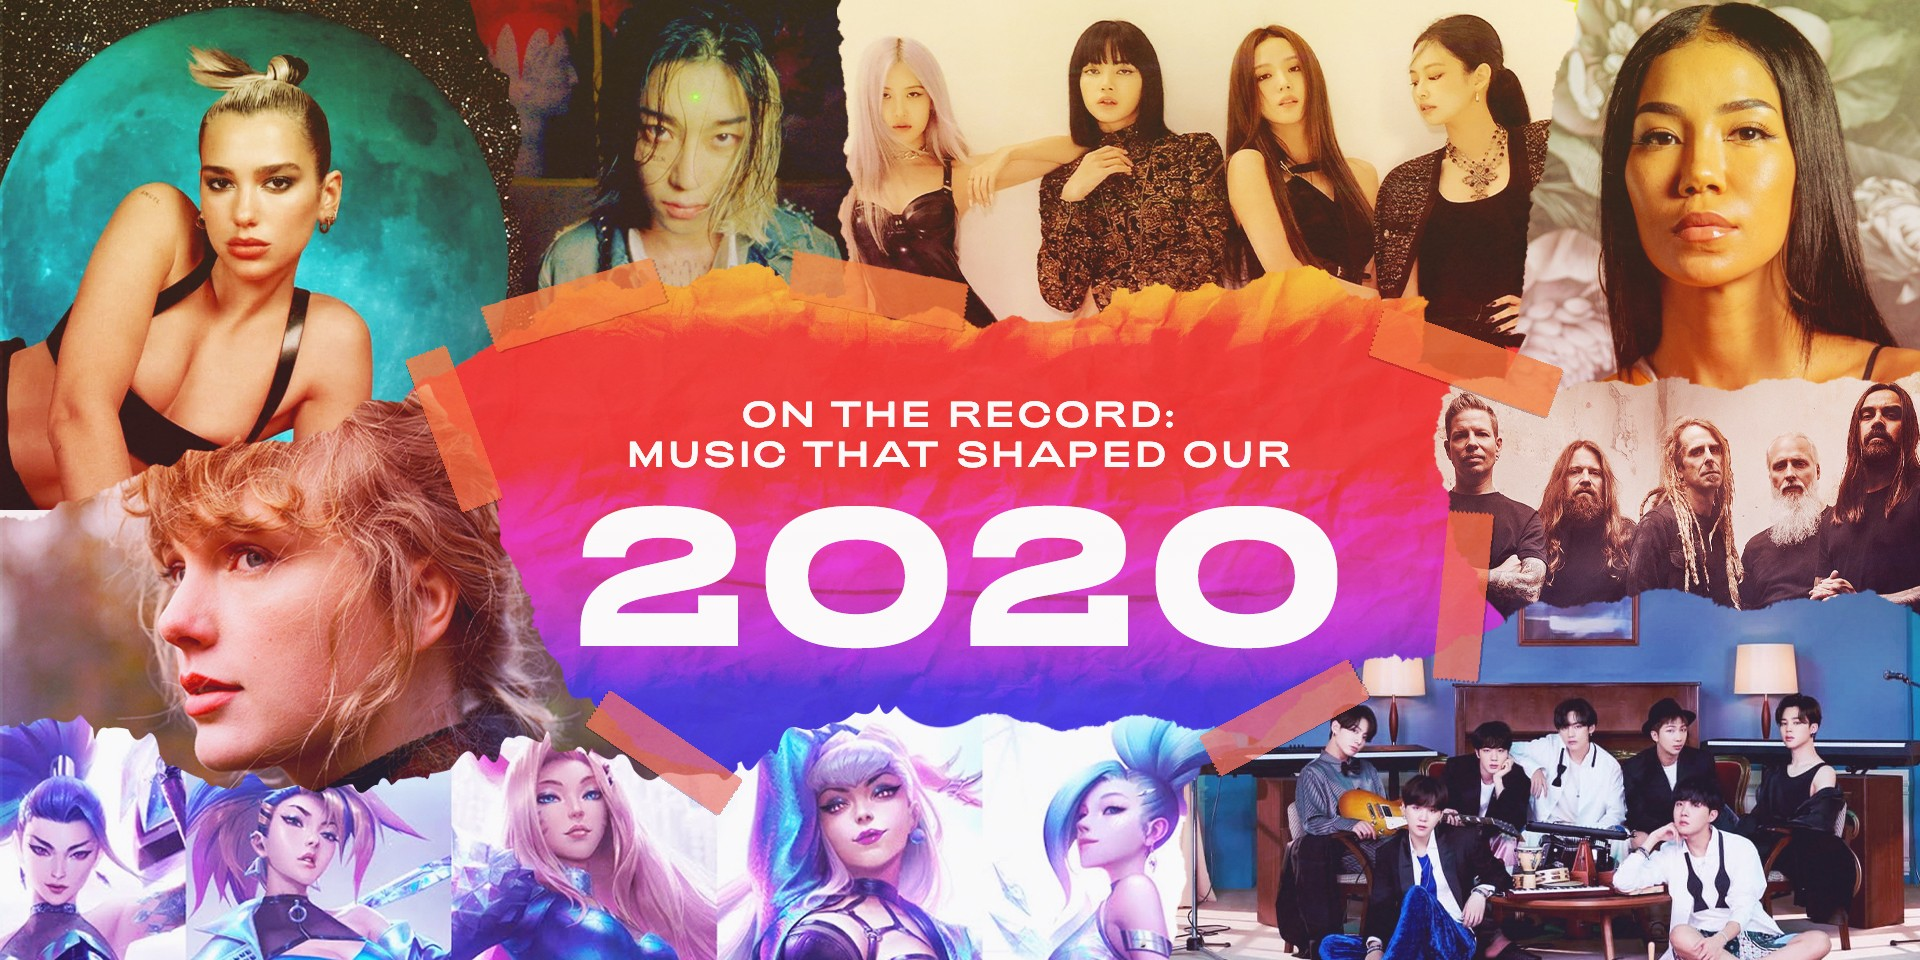 On The Record: The music that shaped our 2020